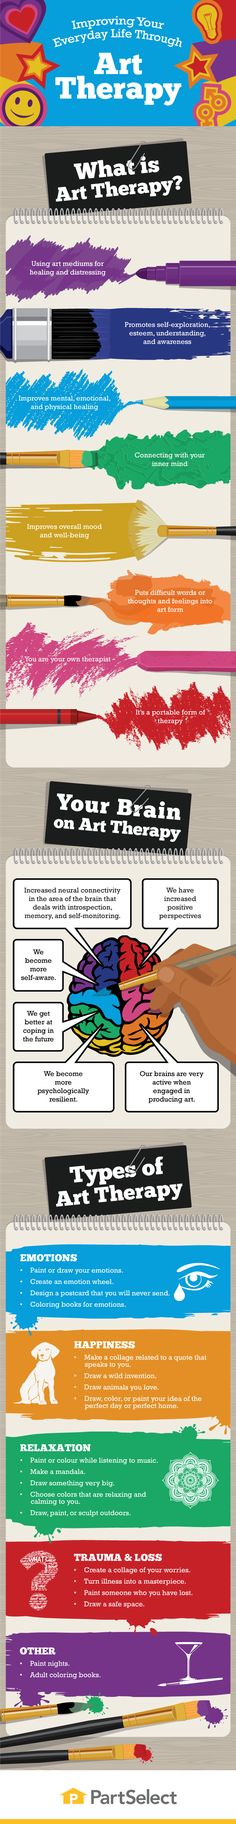 Improving Your Everyday Life Through Art Therapy #Infographic #Art #Health